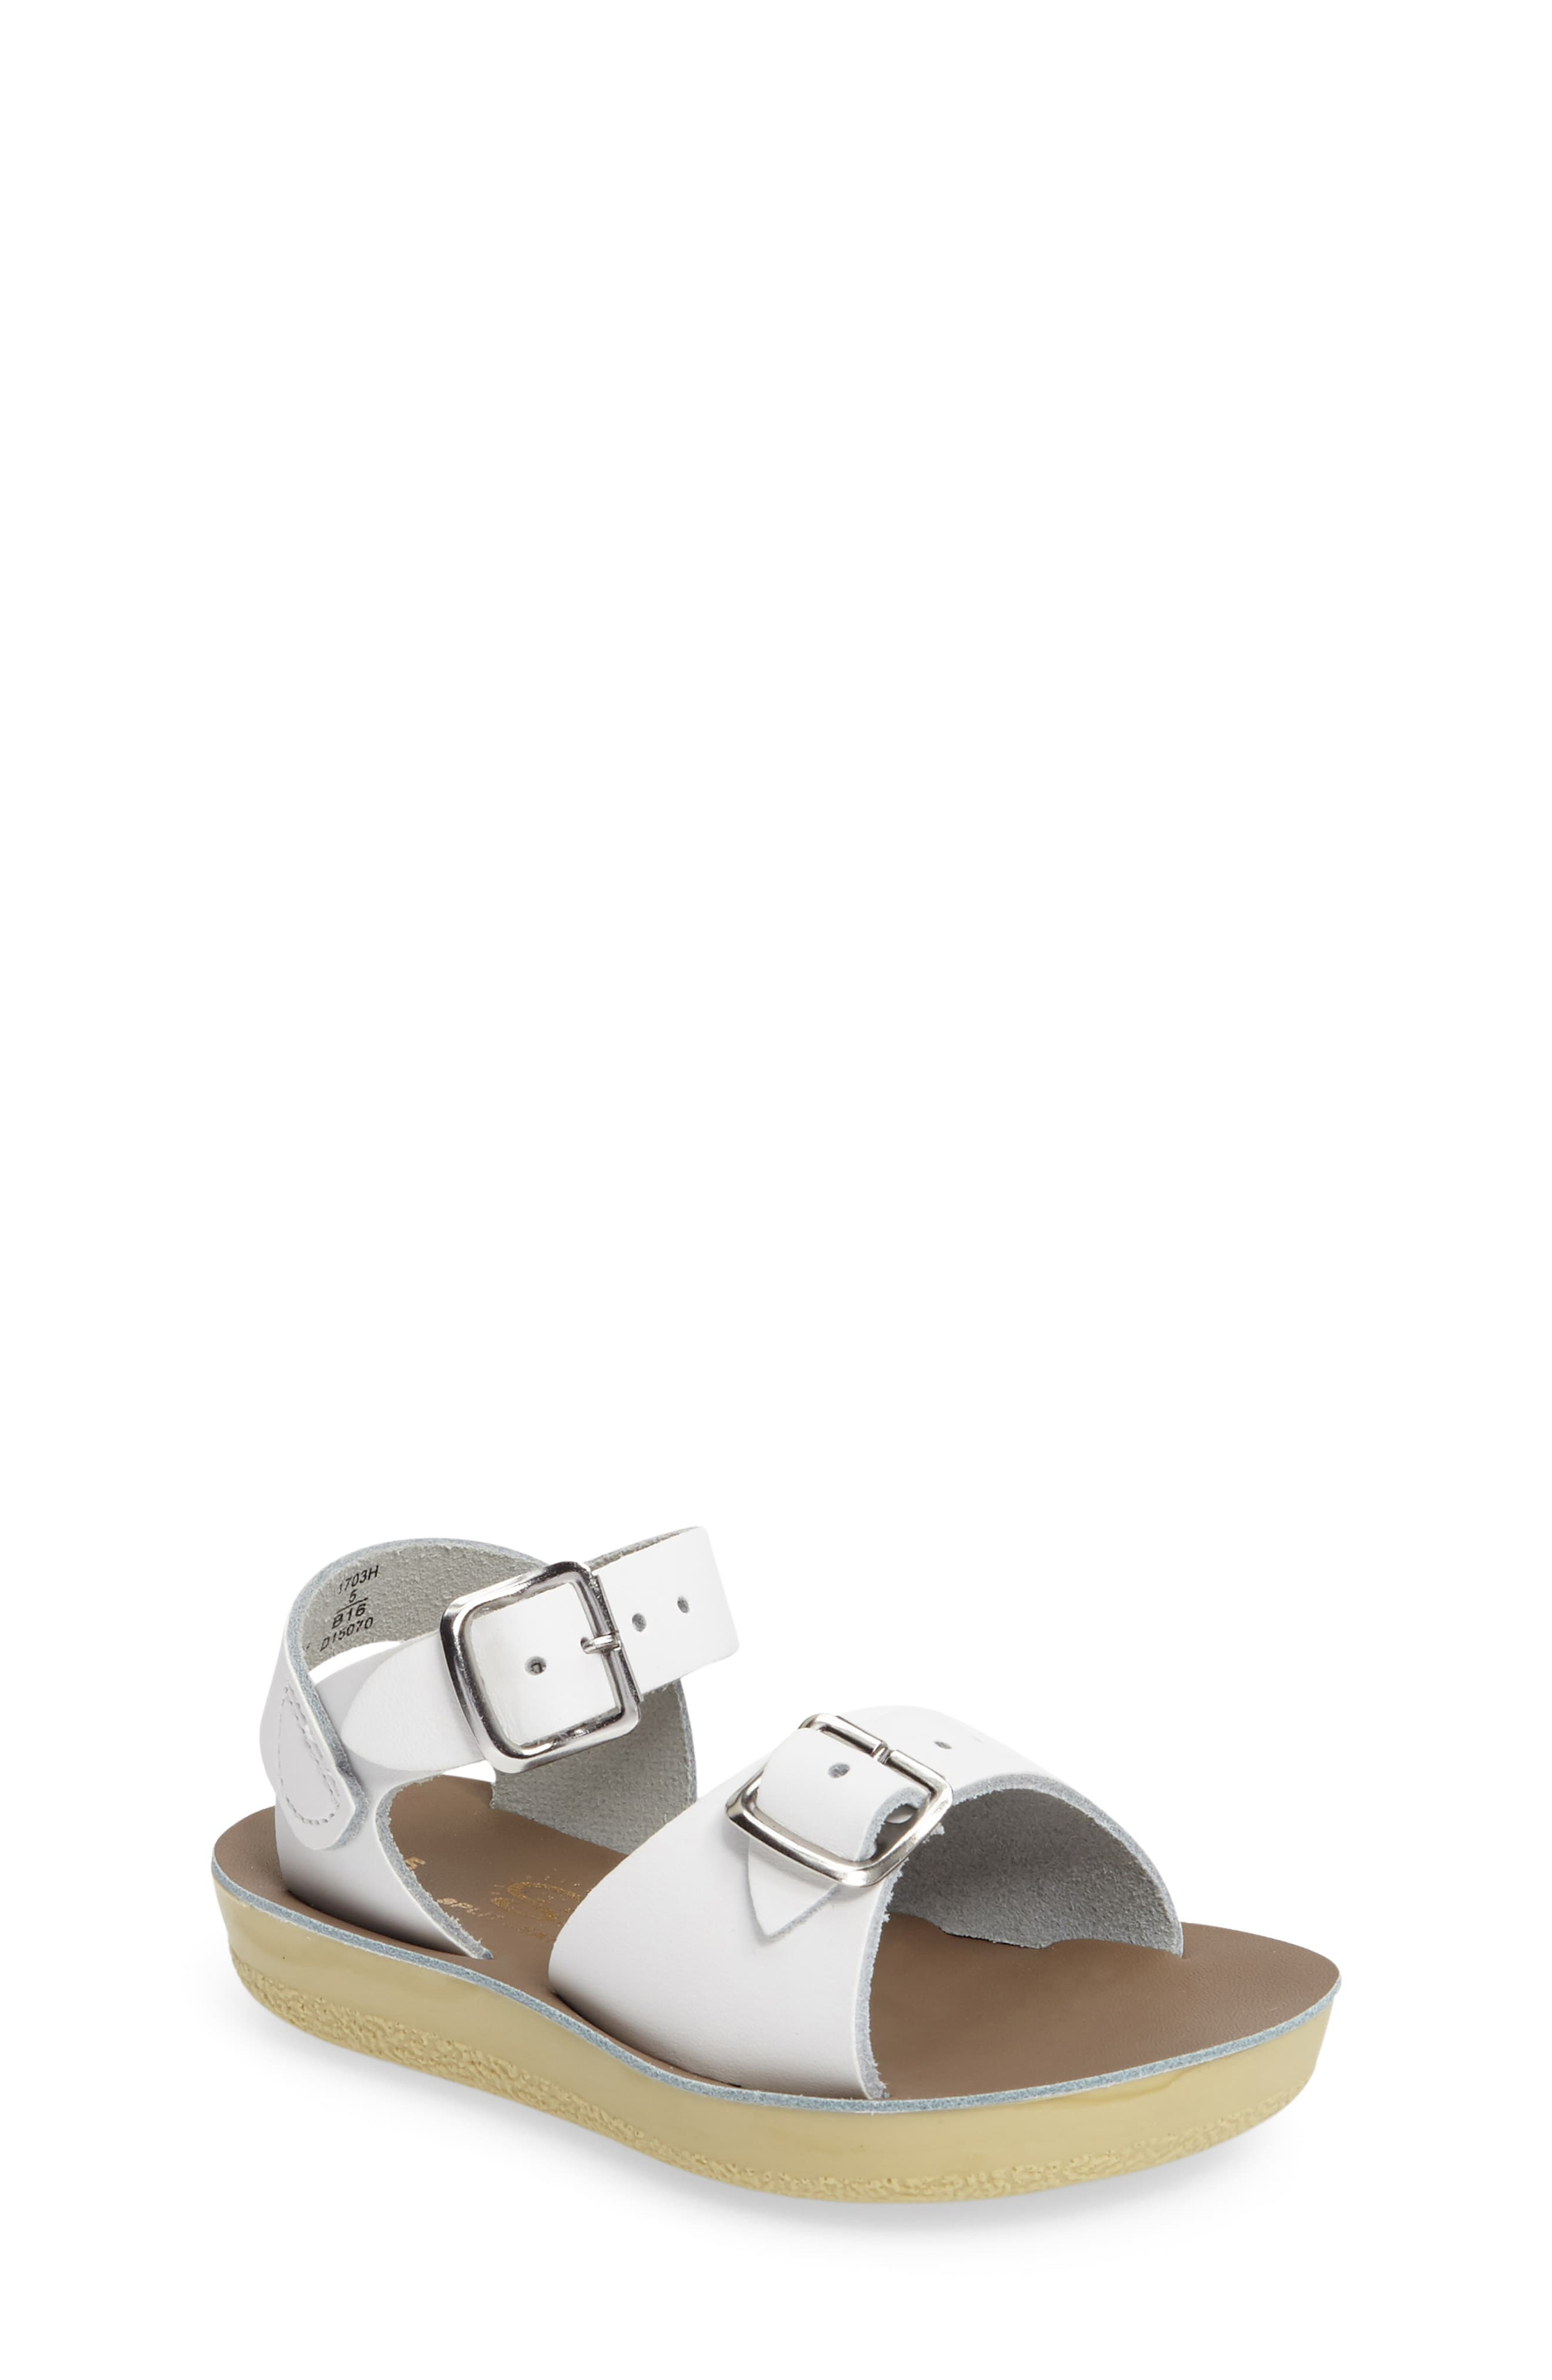 Girl's Salt Water Sandals By Hoy Surfer Water Friendly